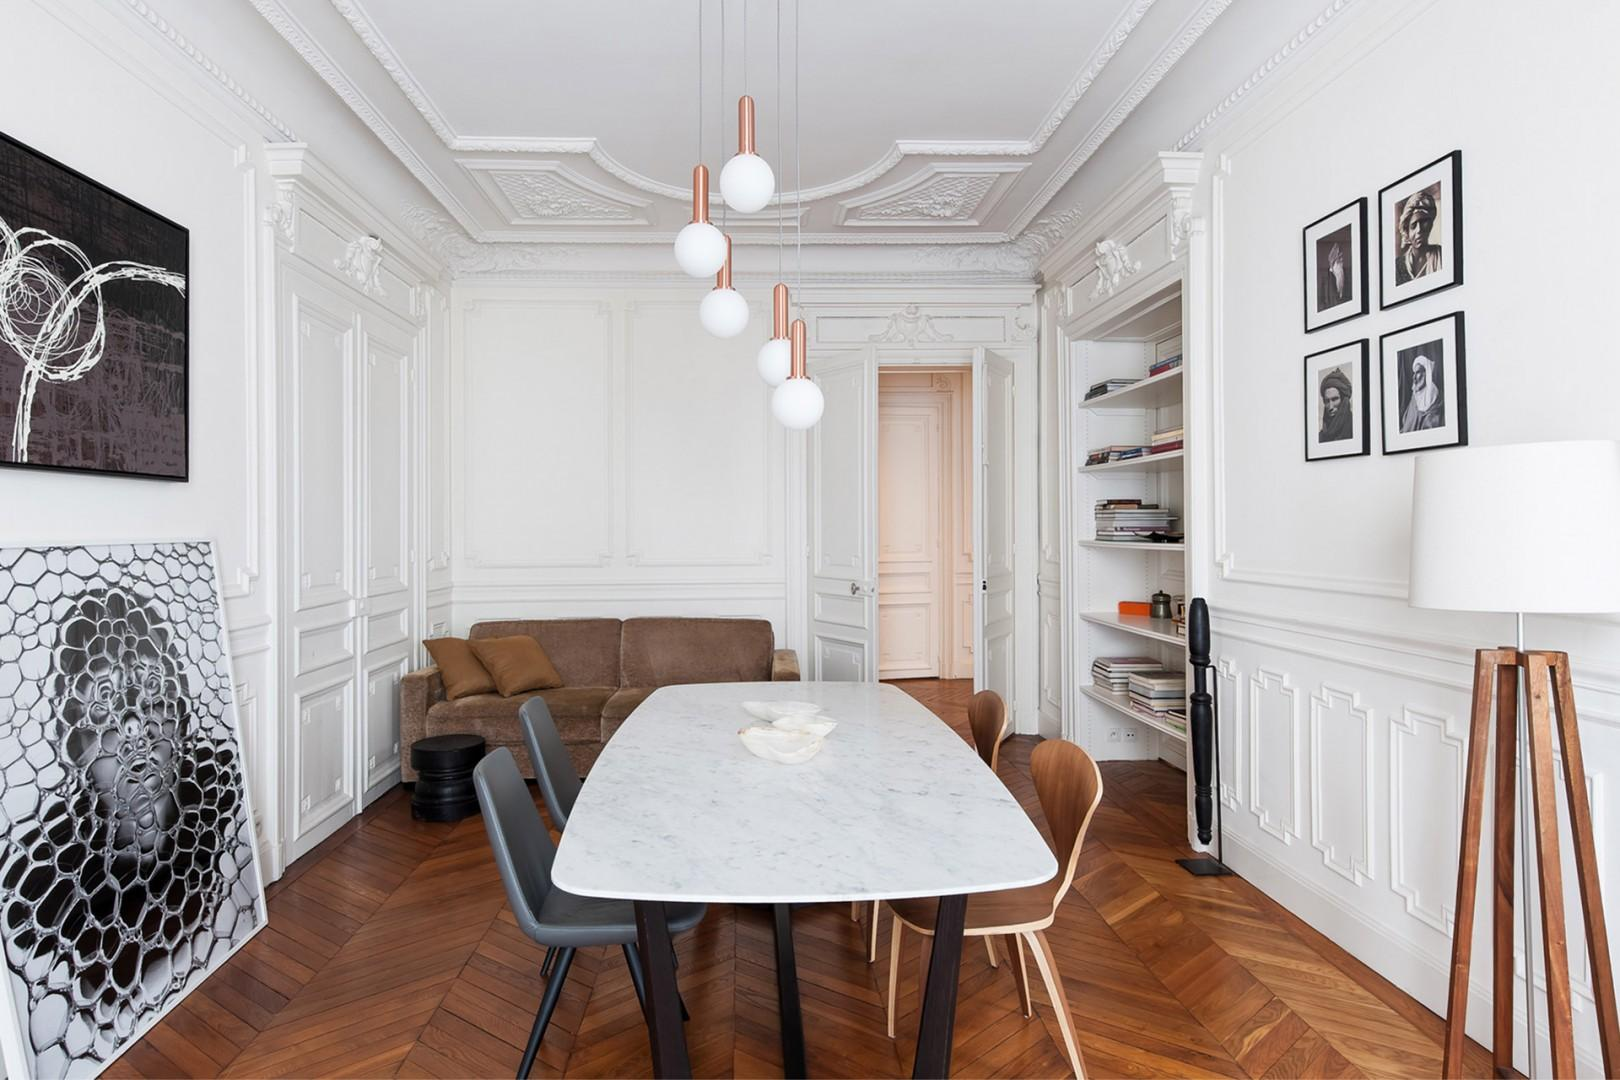 A Parisian dinner party waiting to happen!